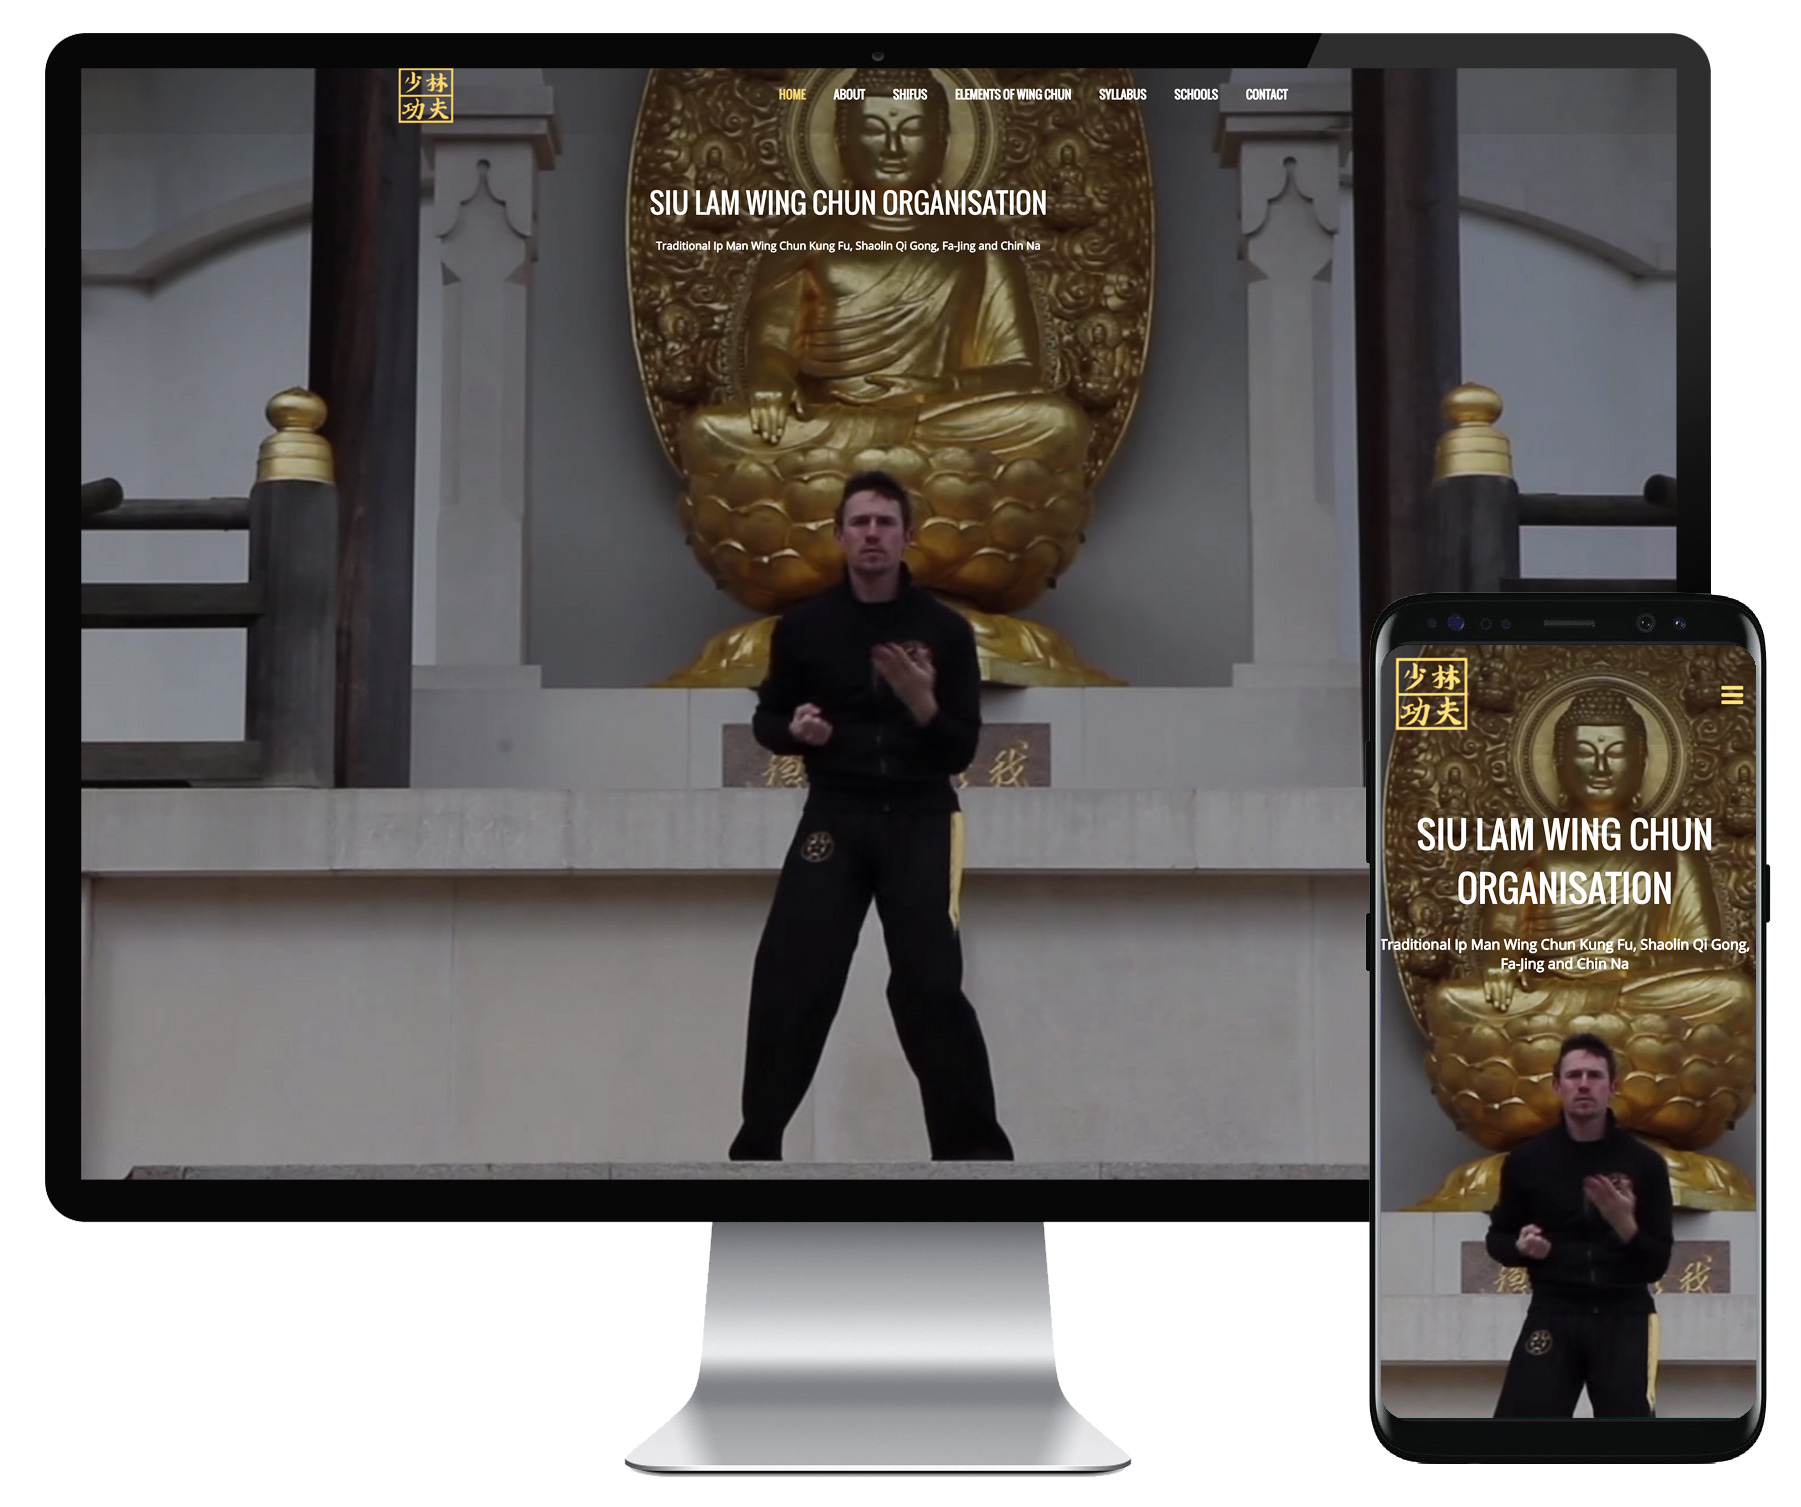 Siu Lam Wing Chun website